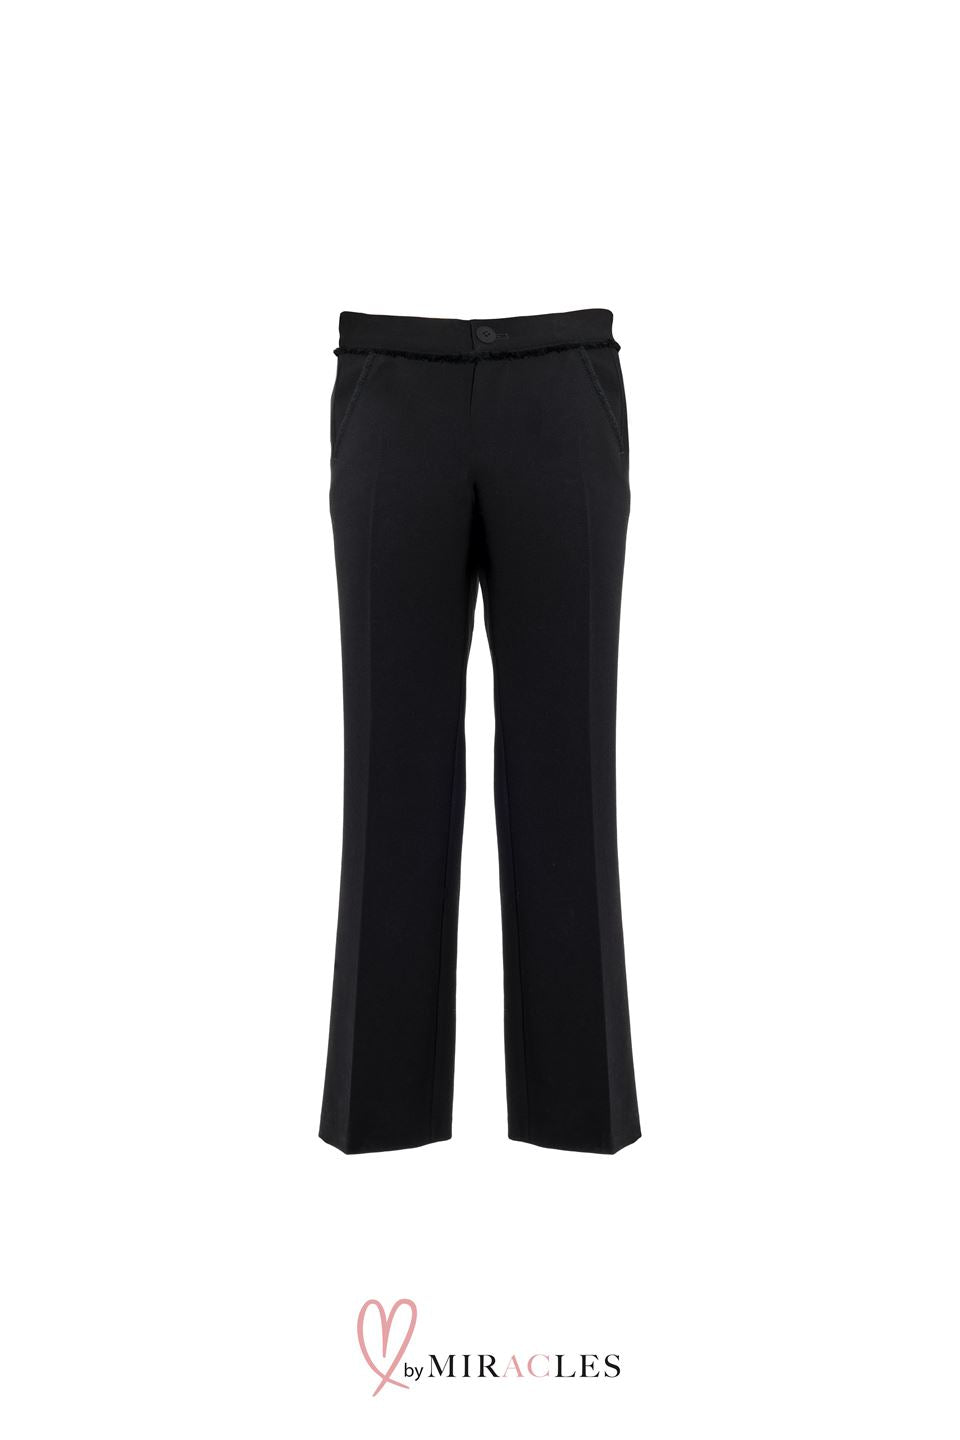 Loved by Miracles KIDS - Broek Pelini Black